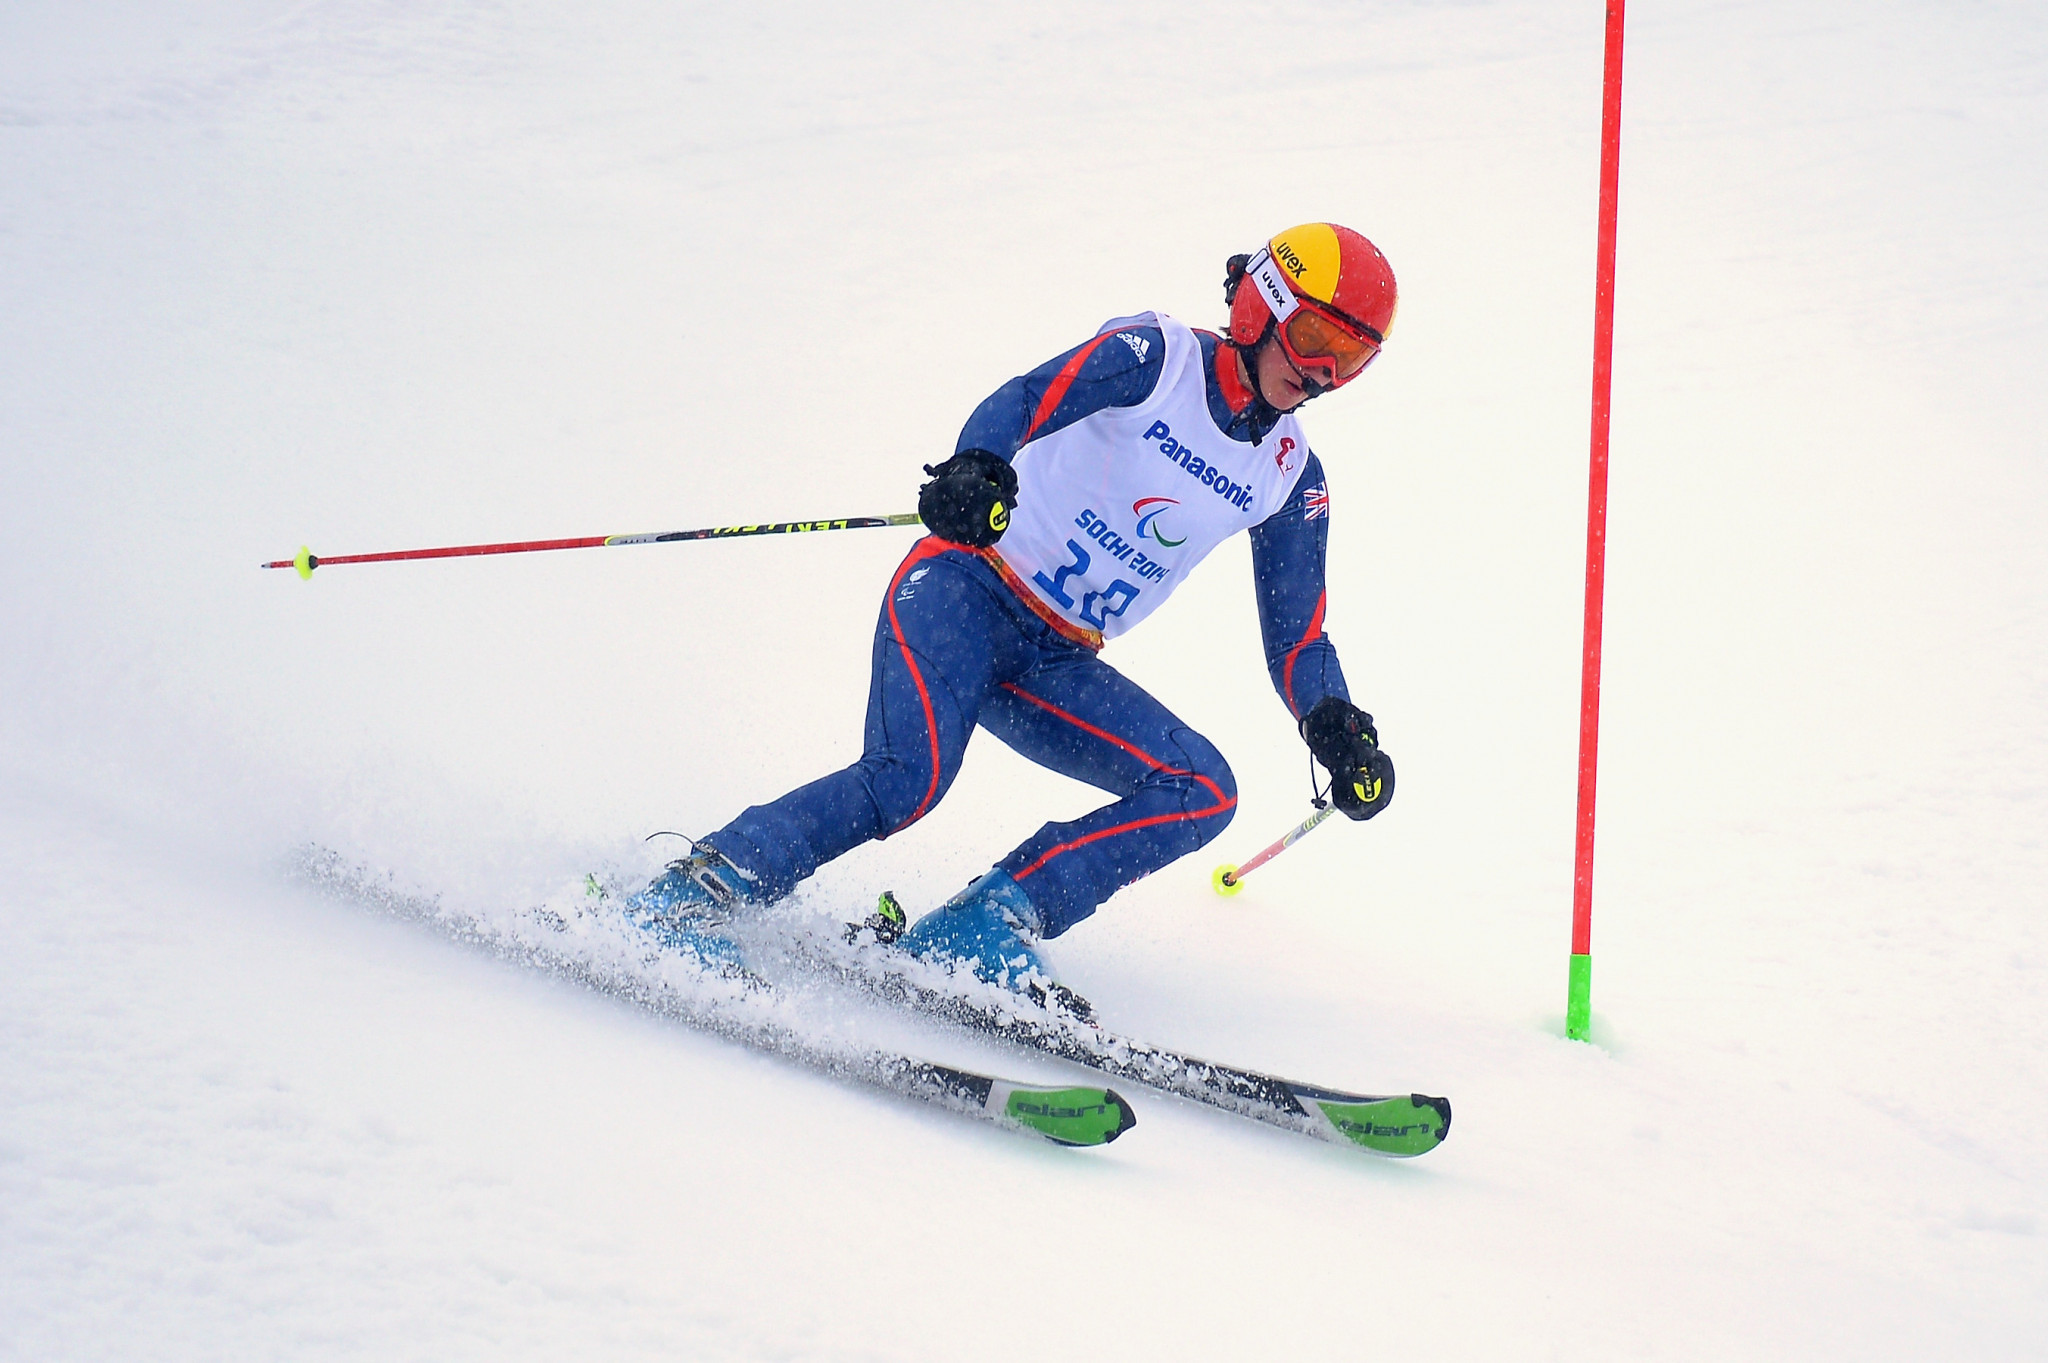 Britain's Millie Knight made her Paralympic debut at Sochi 2014 ©Getty Images